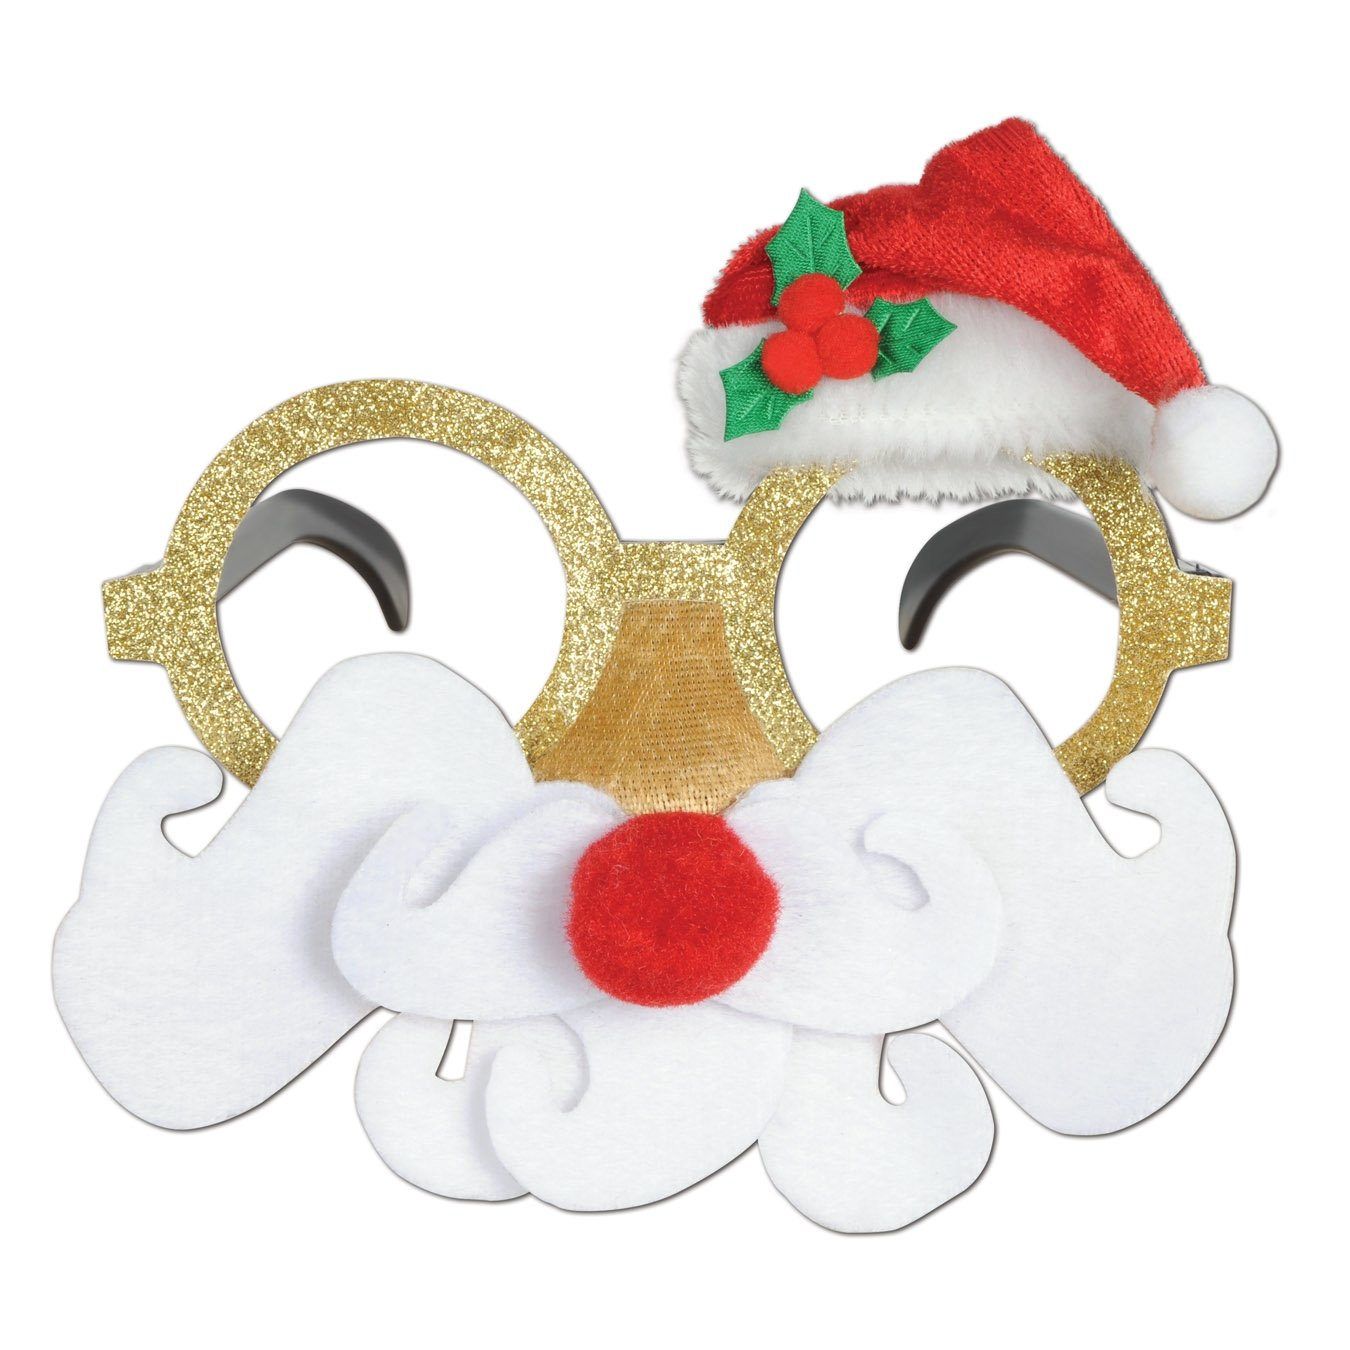 Beistle 1-Pack Glittered Santa Glasses by The Beistle Company: Amazon.es: Juguetes y juegos